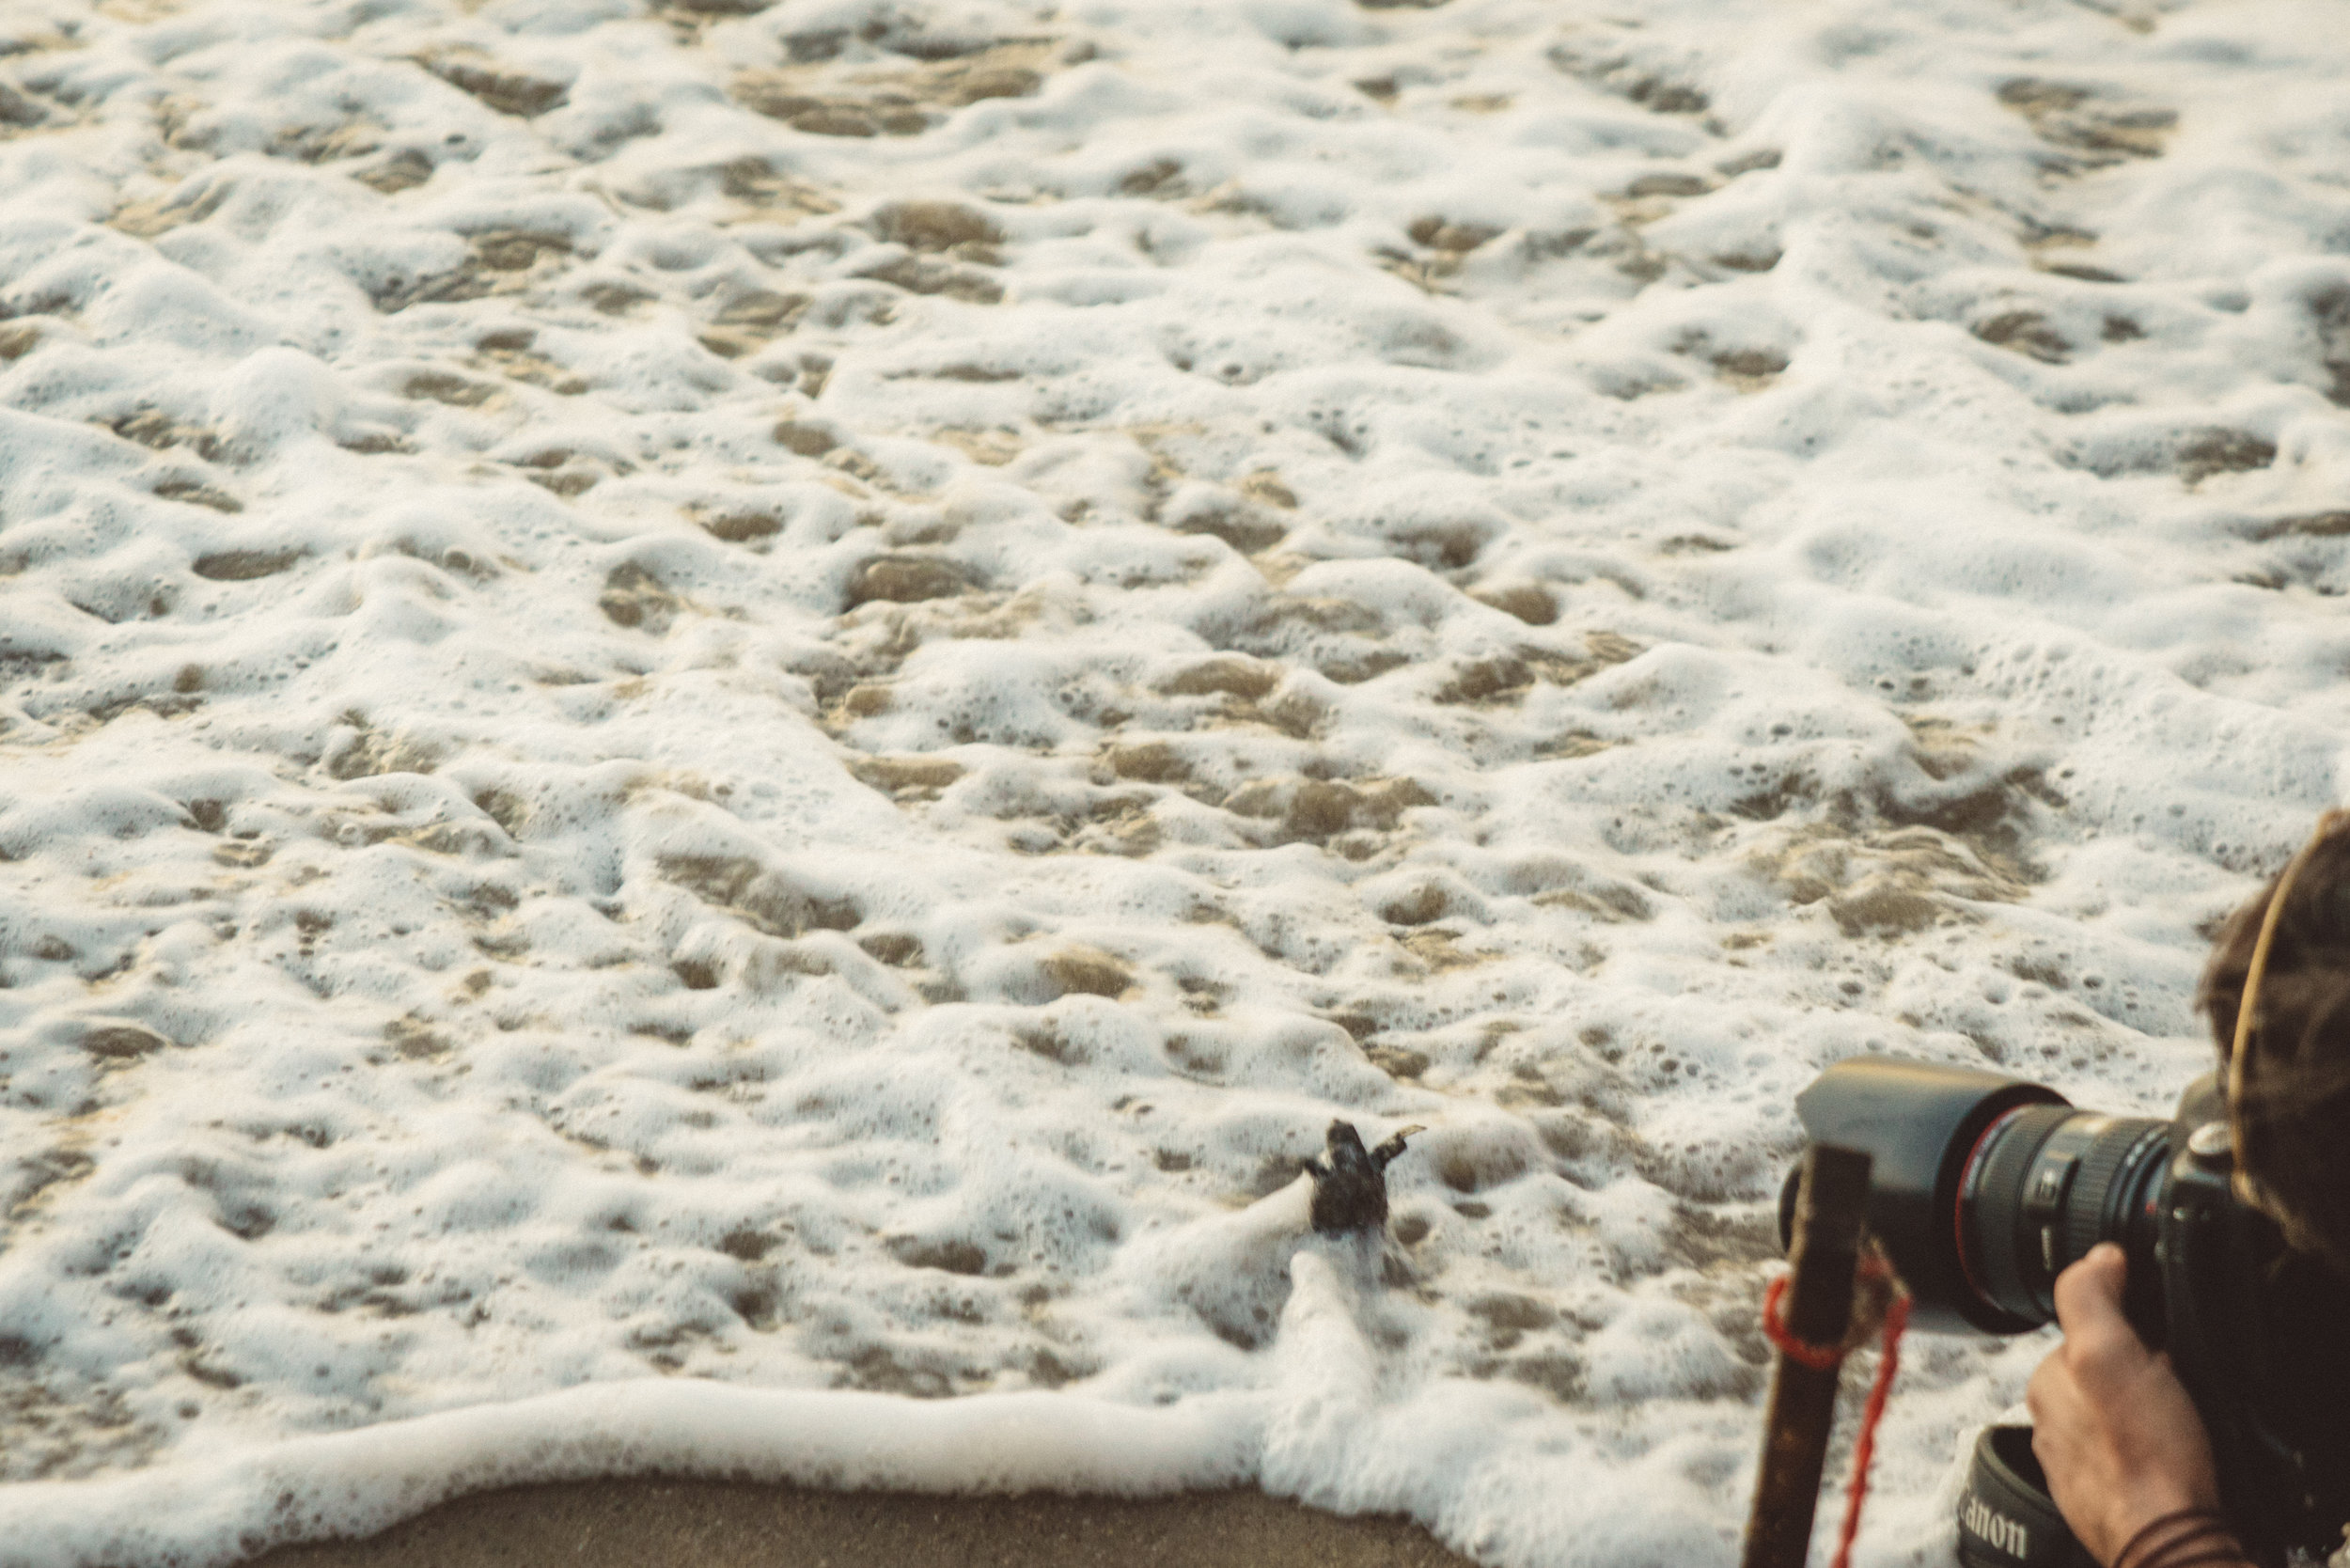 You've got to feel bad for these guys getting just rocked by the unrelenting waves.